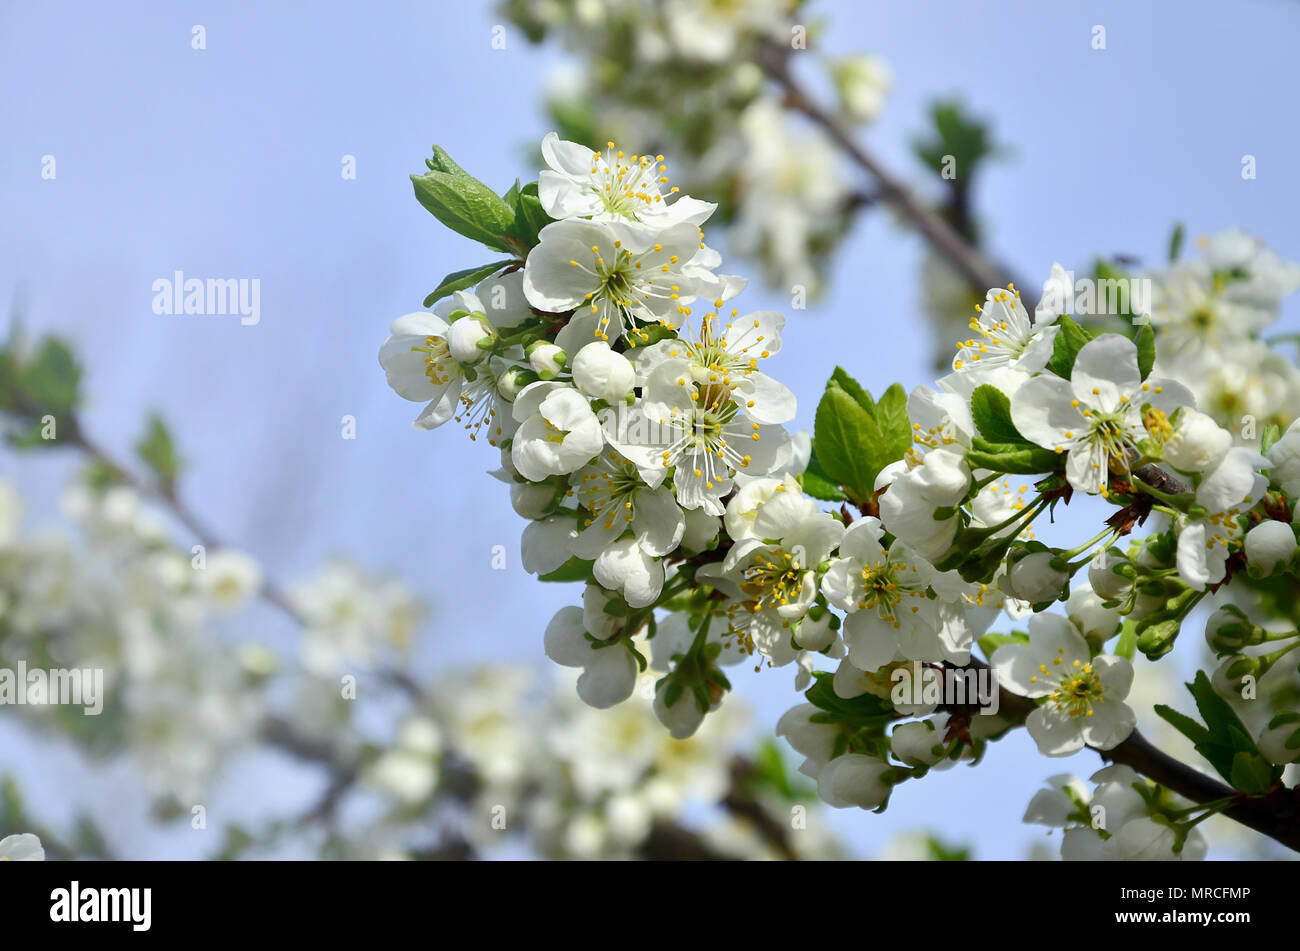 Flowering Branch Of Apricot Tree Early Flowering Of Trees In April